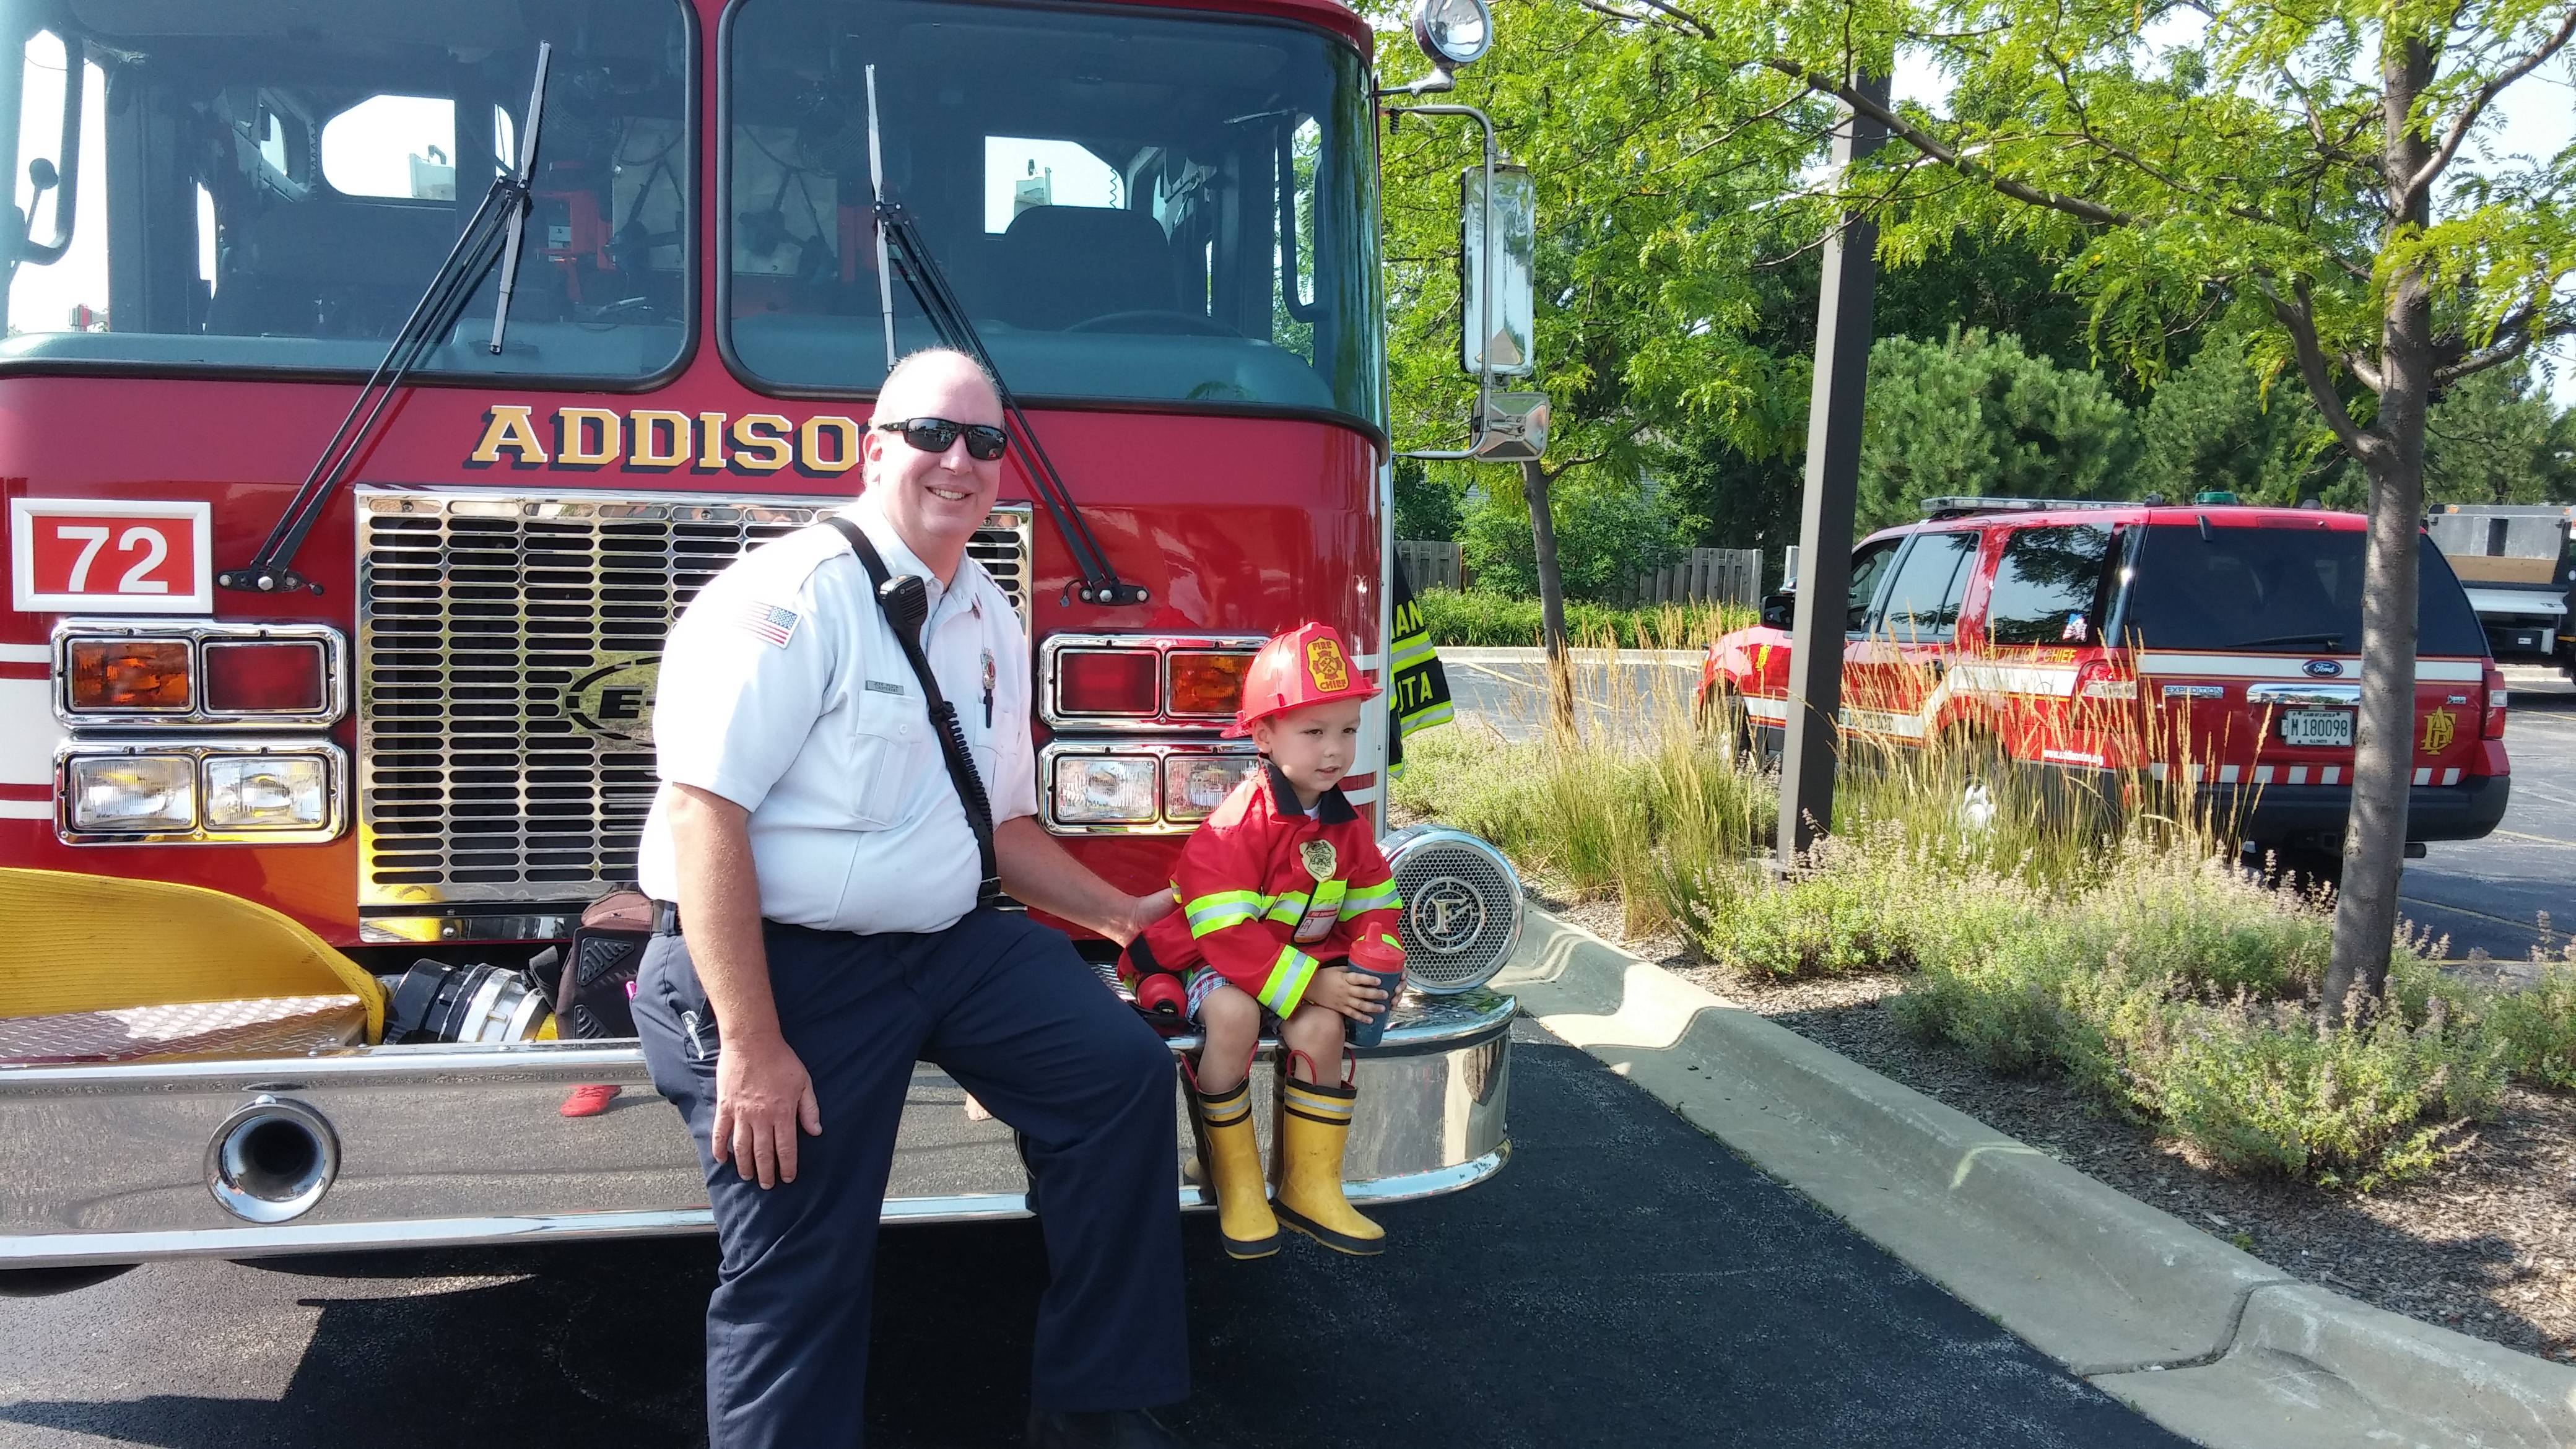 Addison Fire District will be present at the 2015 Touch a Truck morning event in Centennial Park on Saturday, August 8.Braulio Herrera